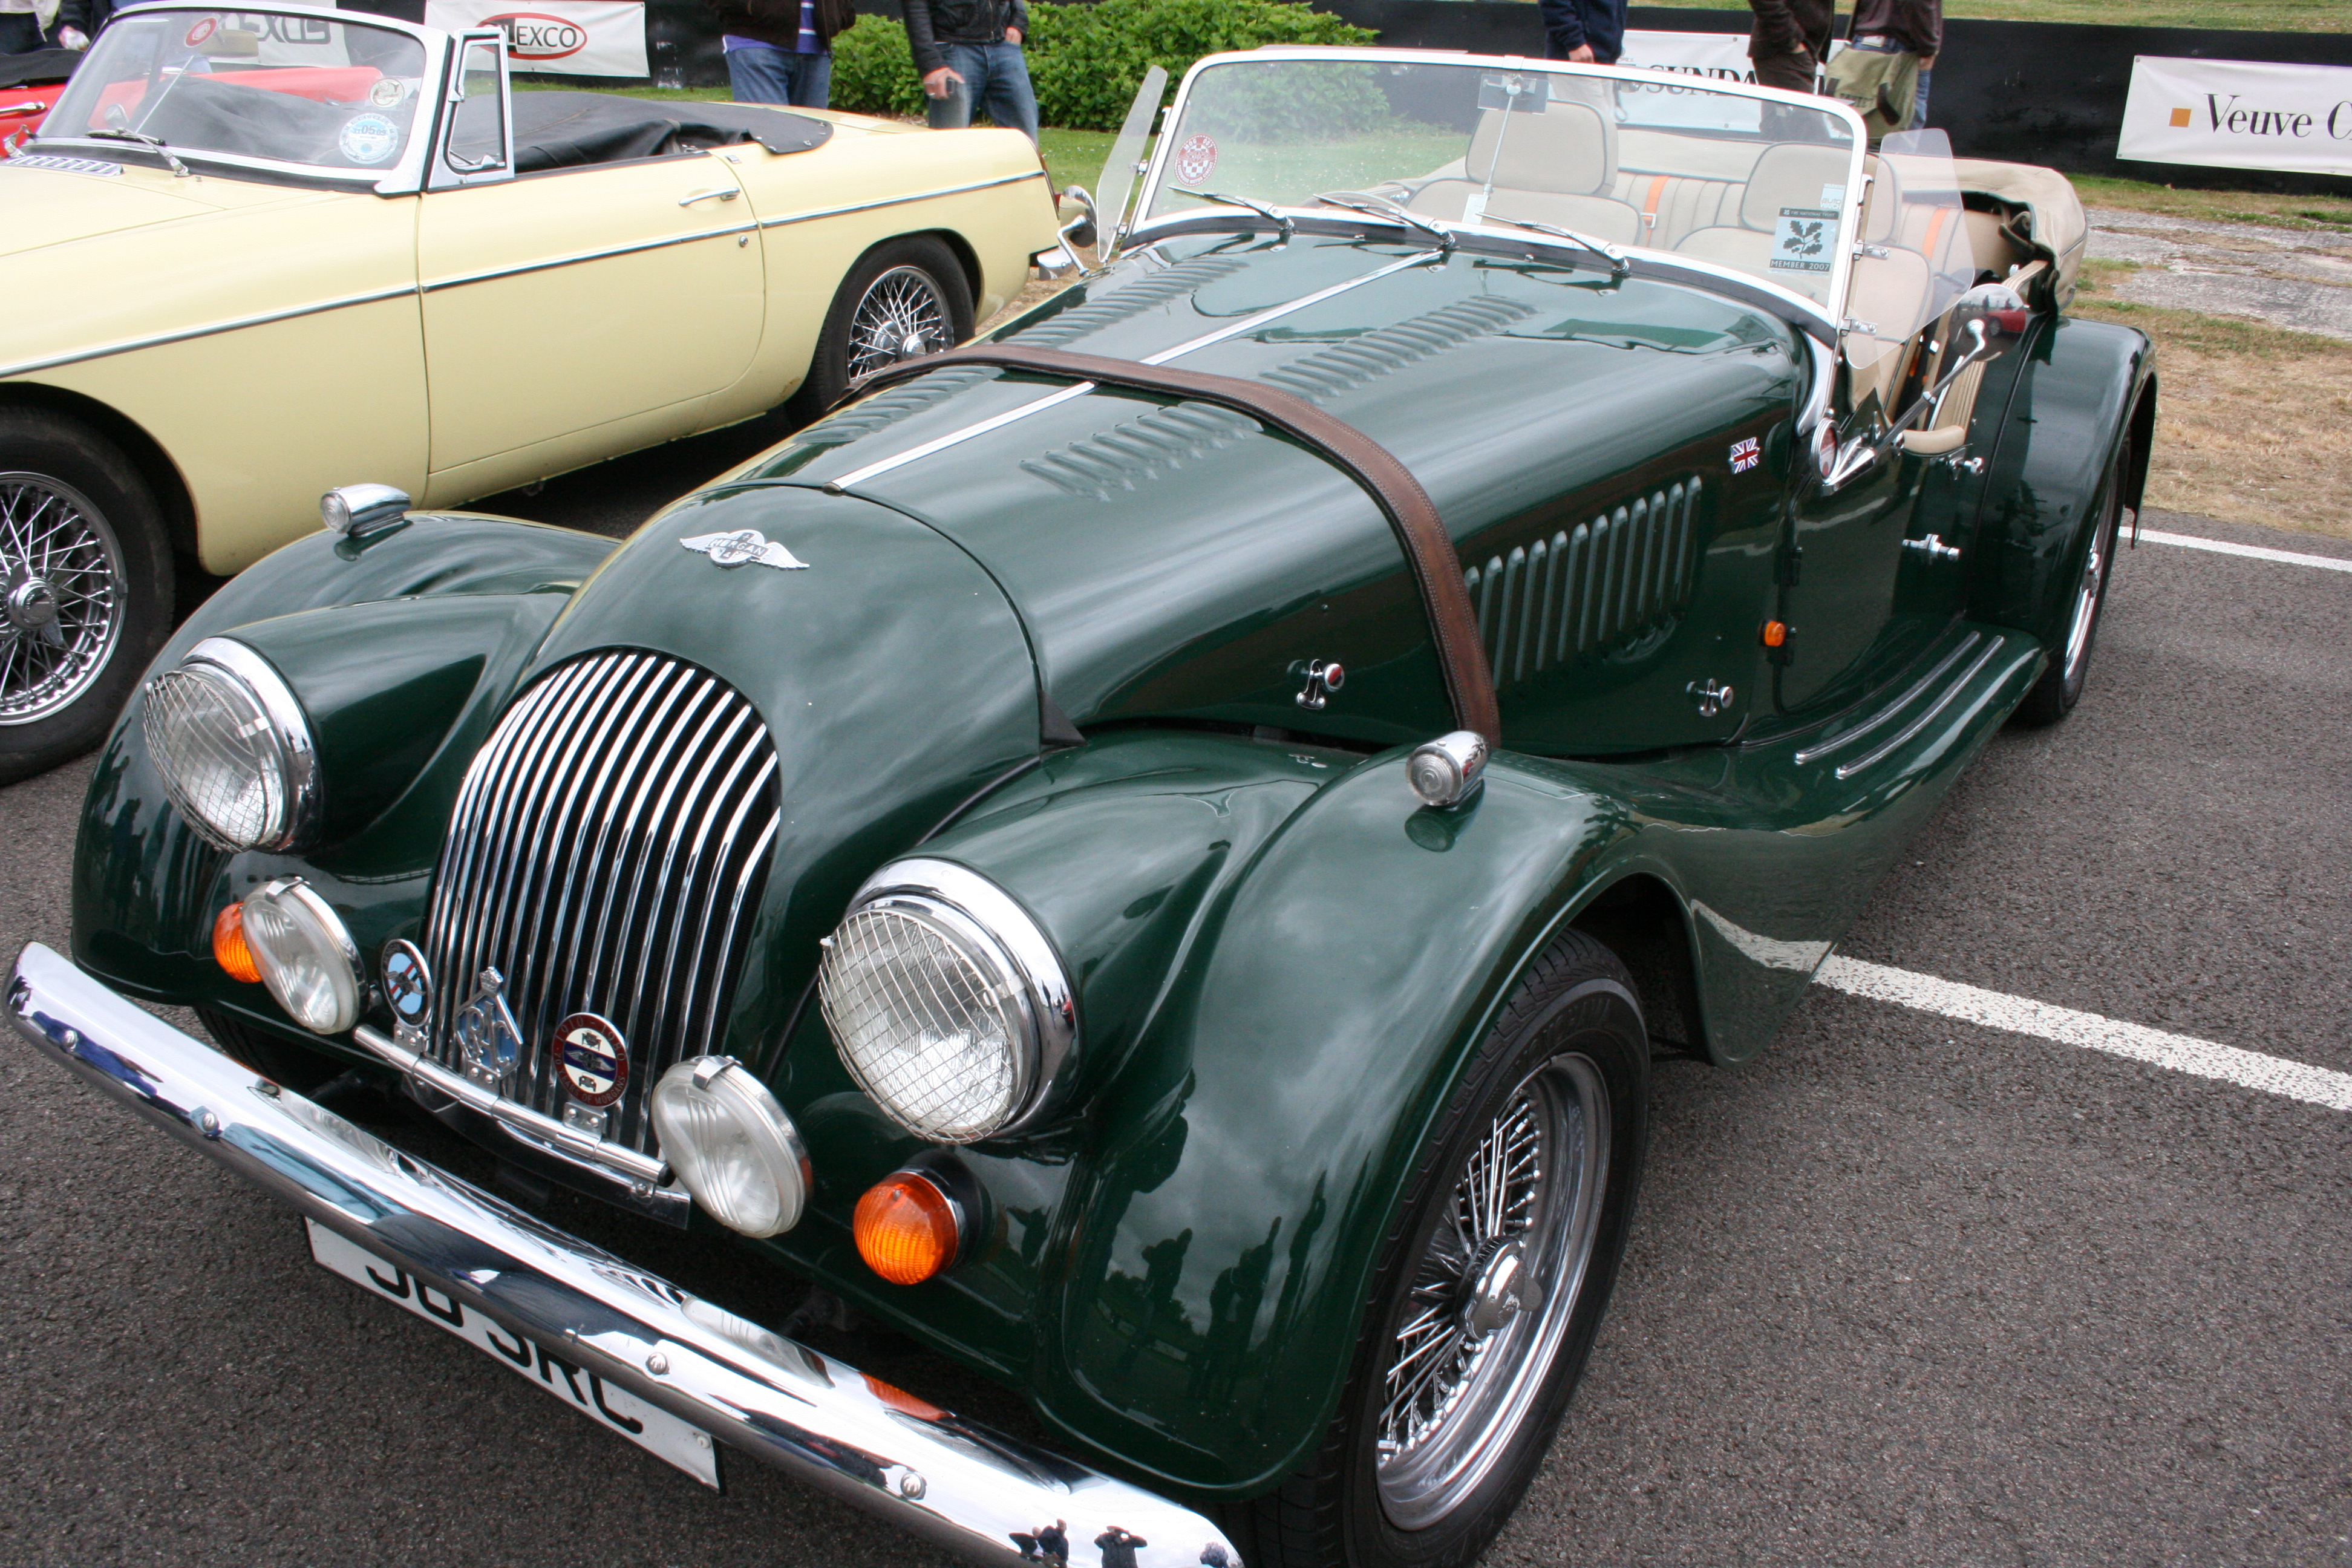 Morgan Roadster #14